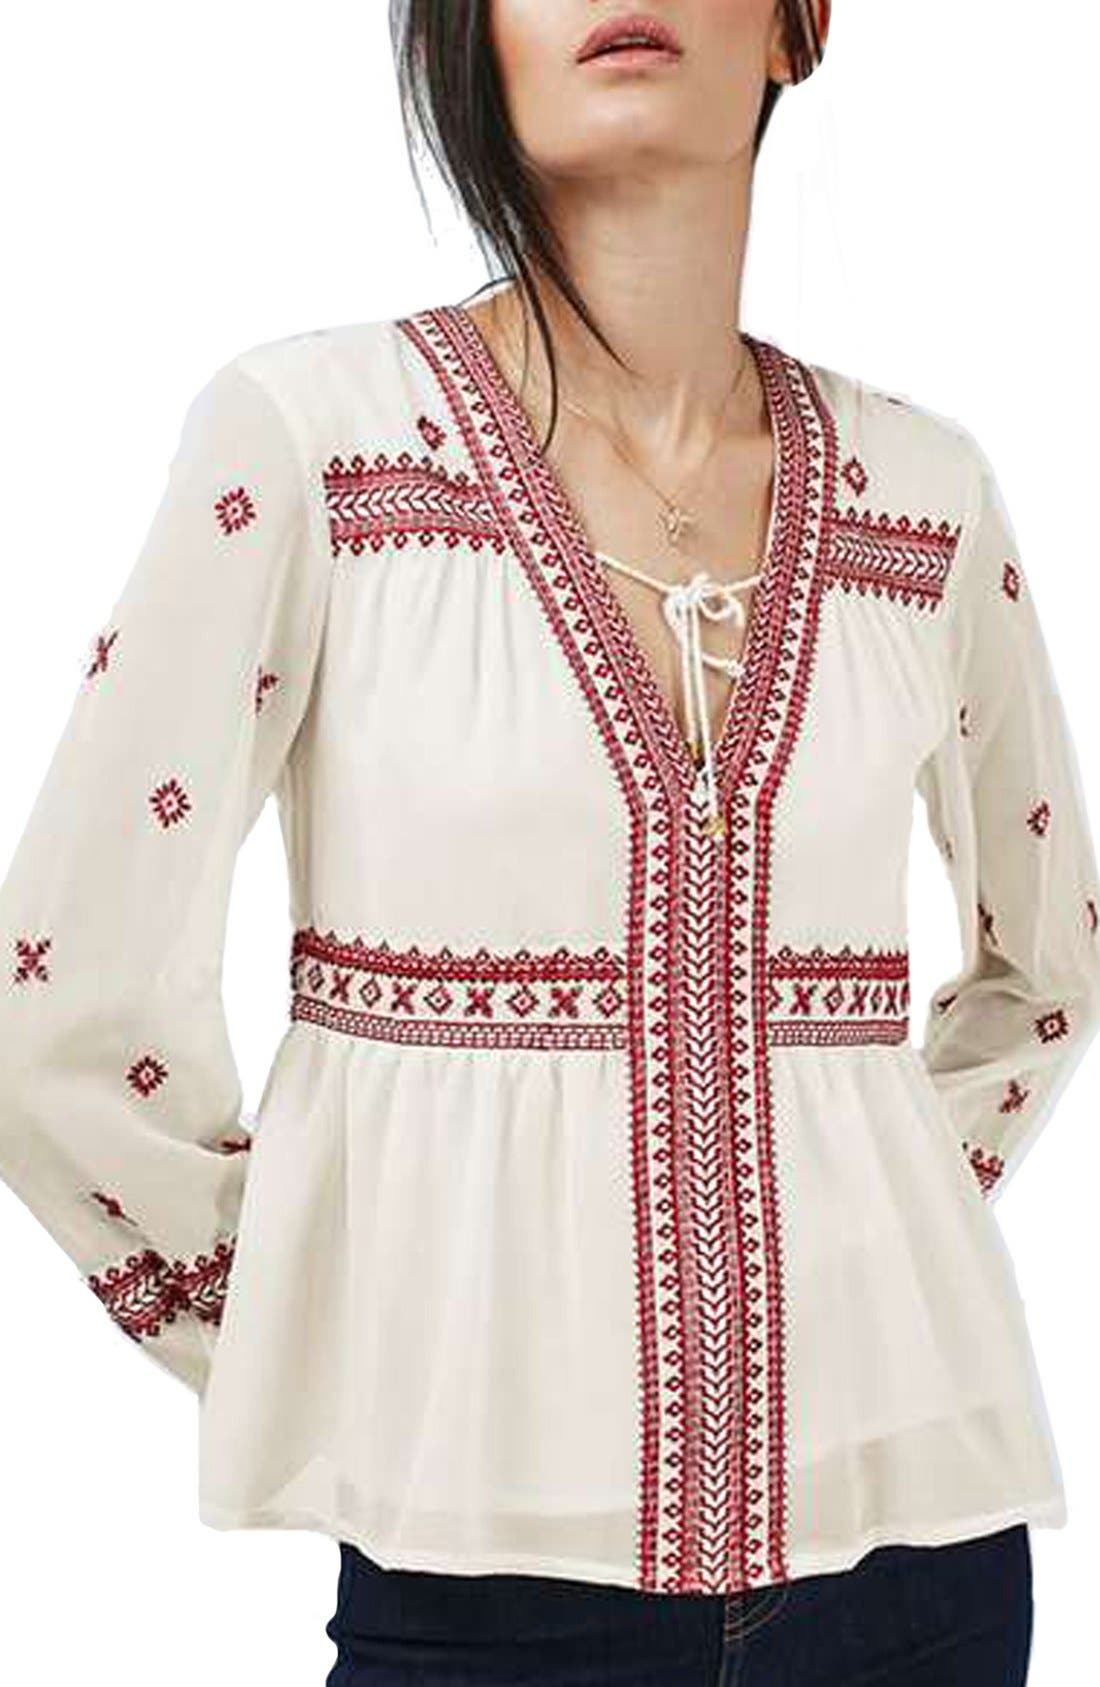 Alternate Image 1 Selected - Topshop Embroidered Peasant Top